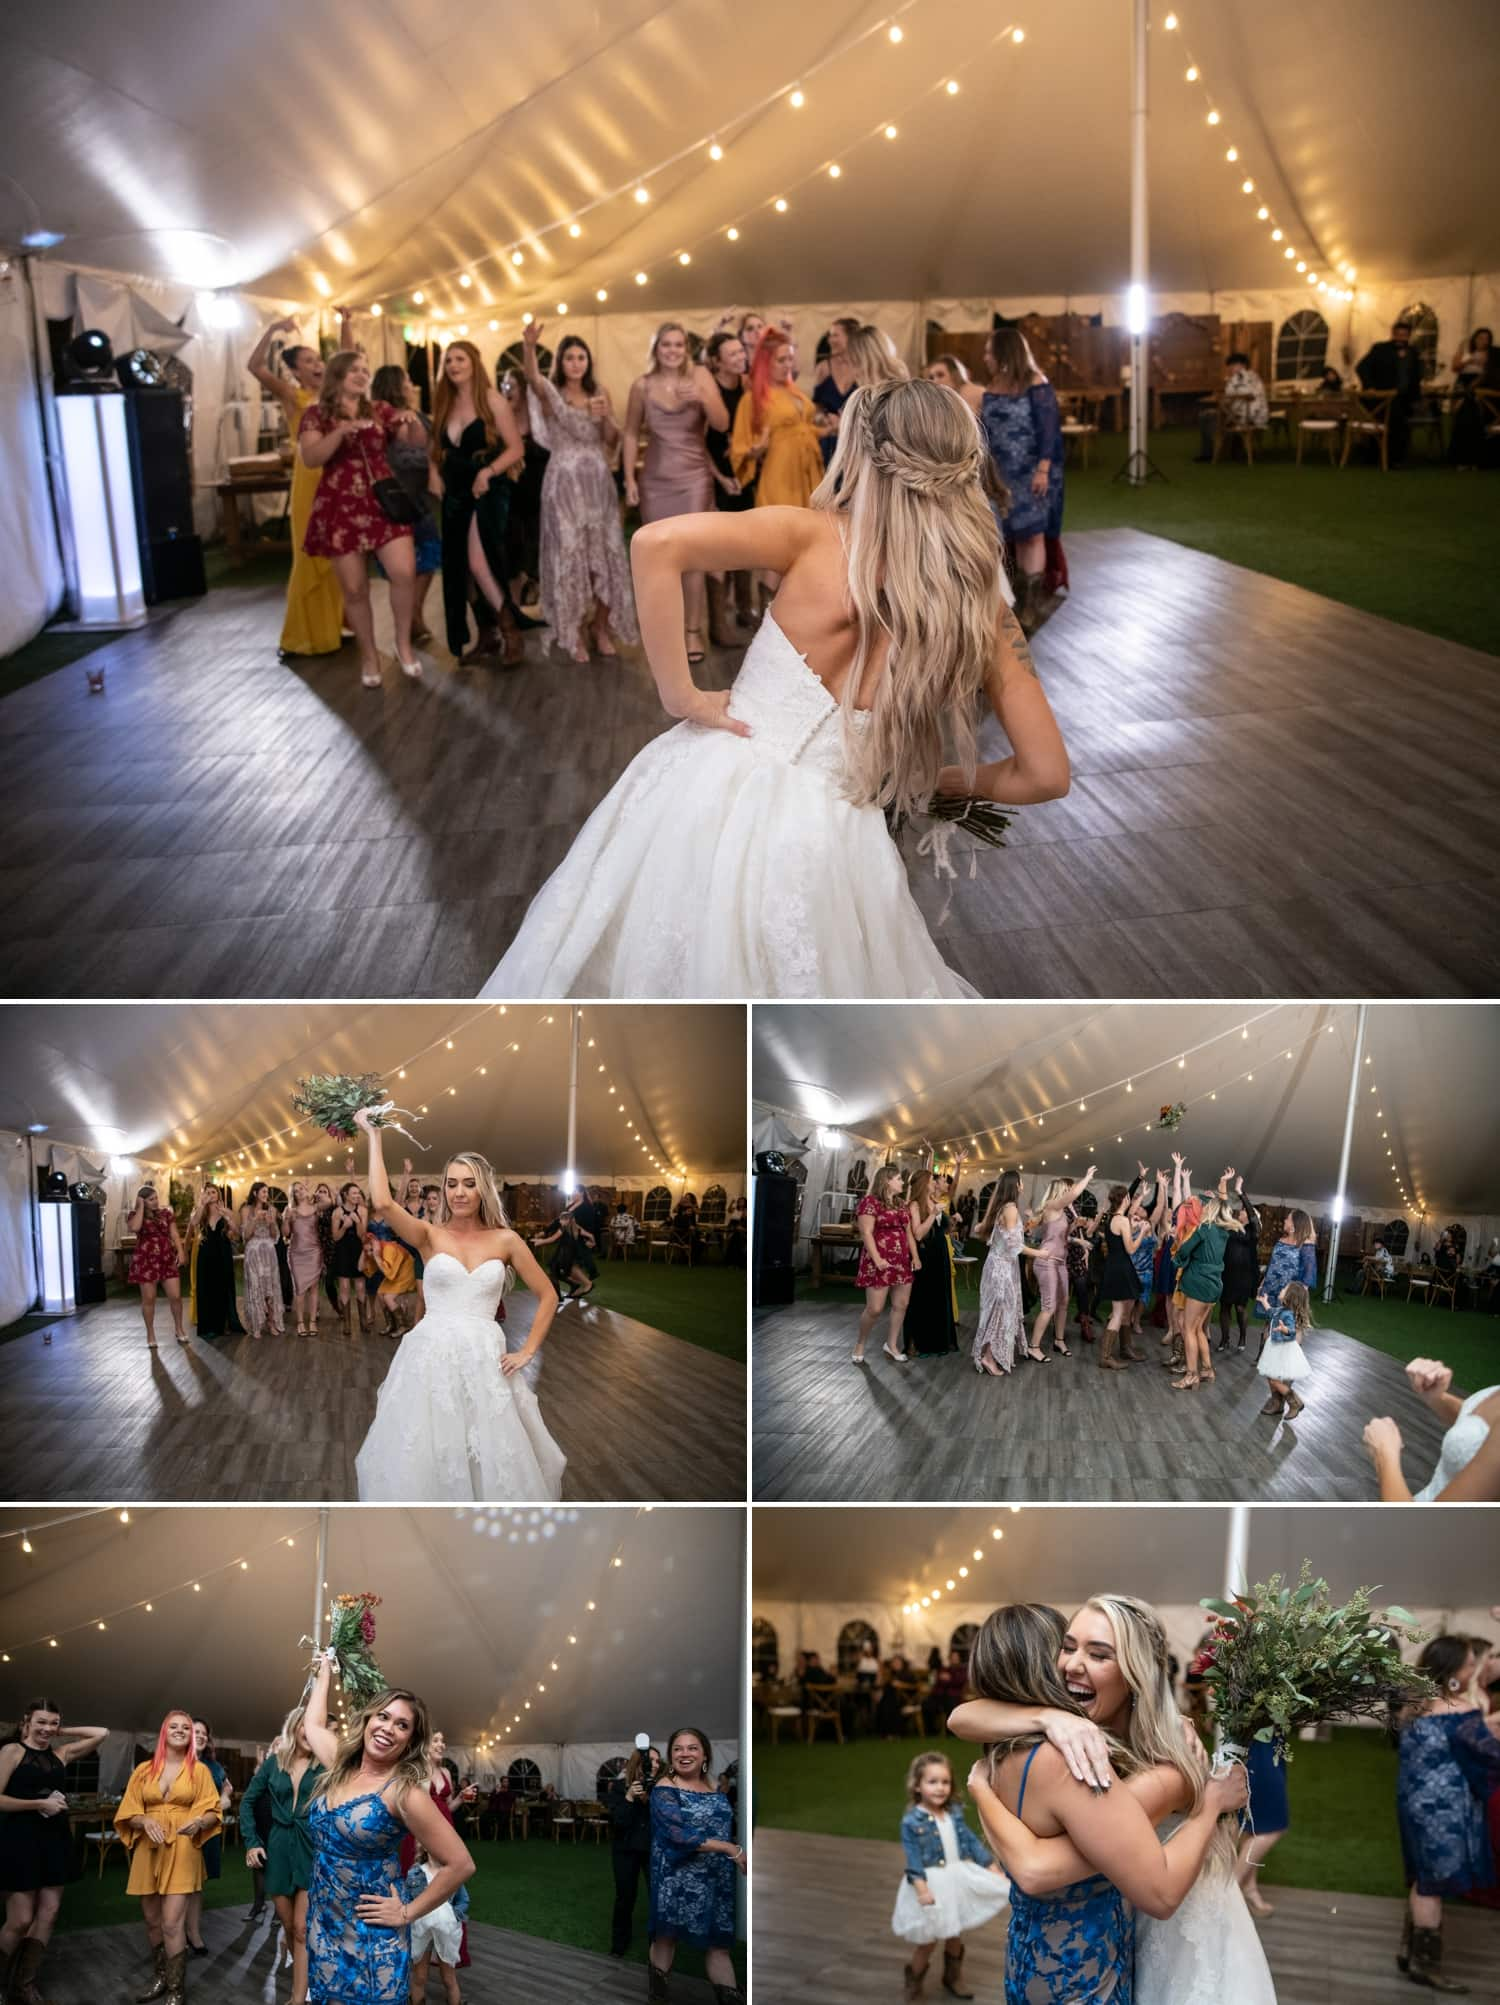 Bride doing the bouquet toss at Ethereal Gardens.